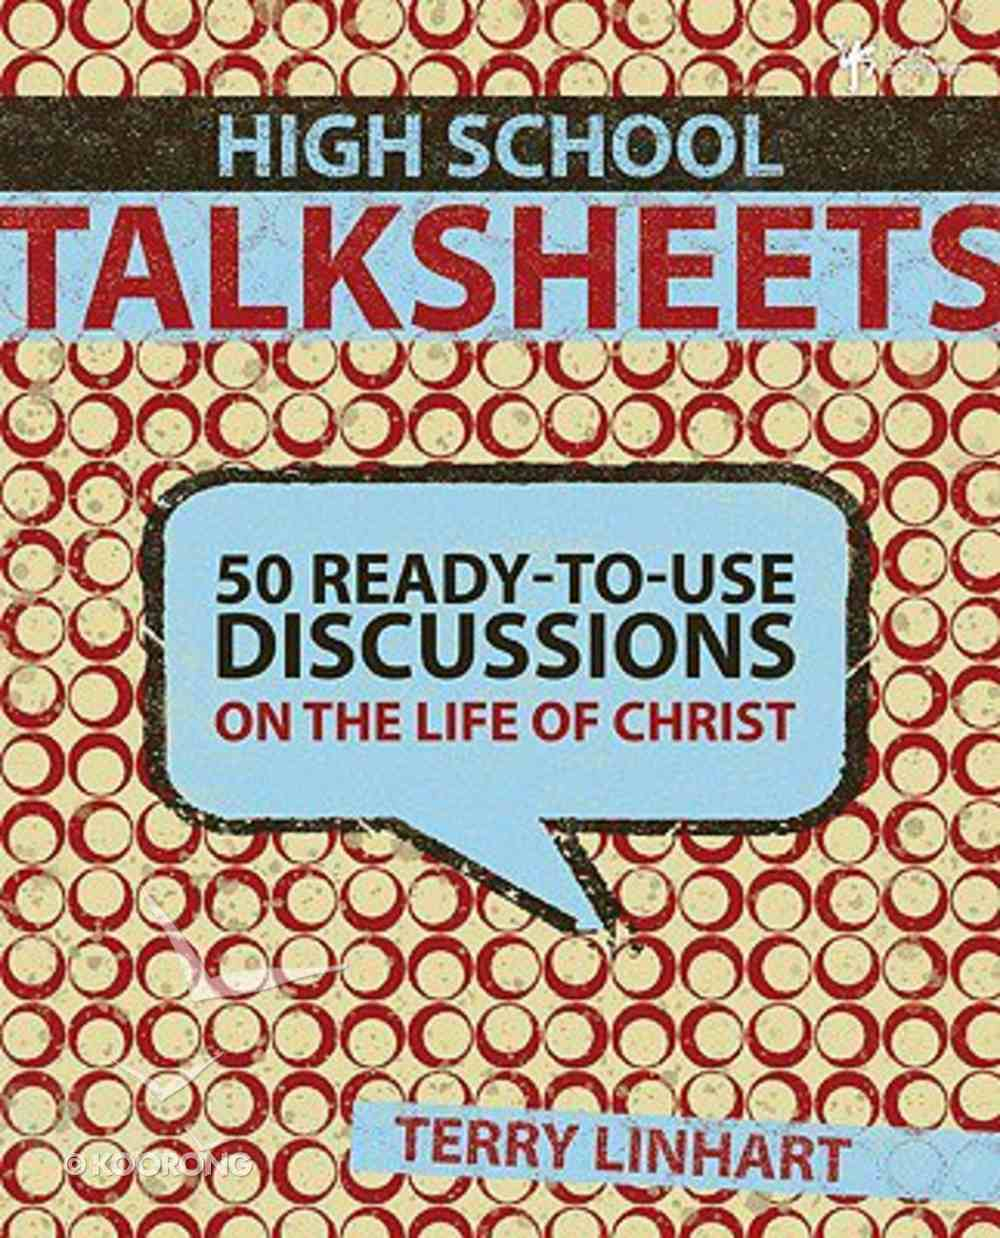 High School Talksheets: Discussions on the Life of Christ Paperback